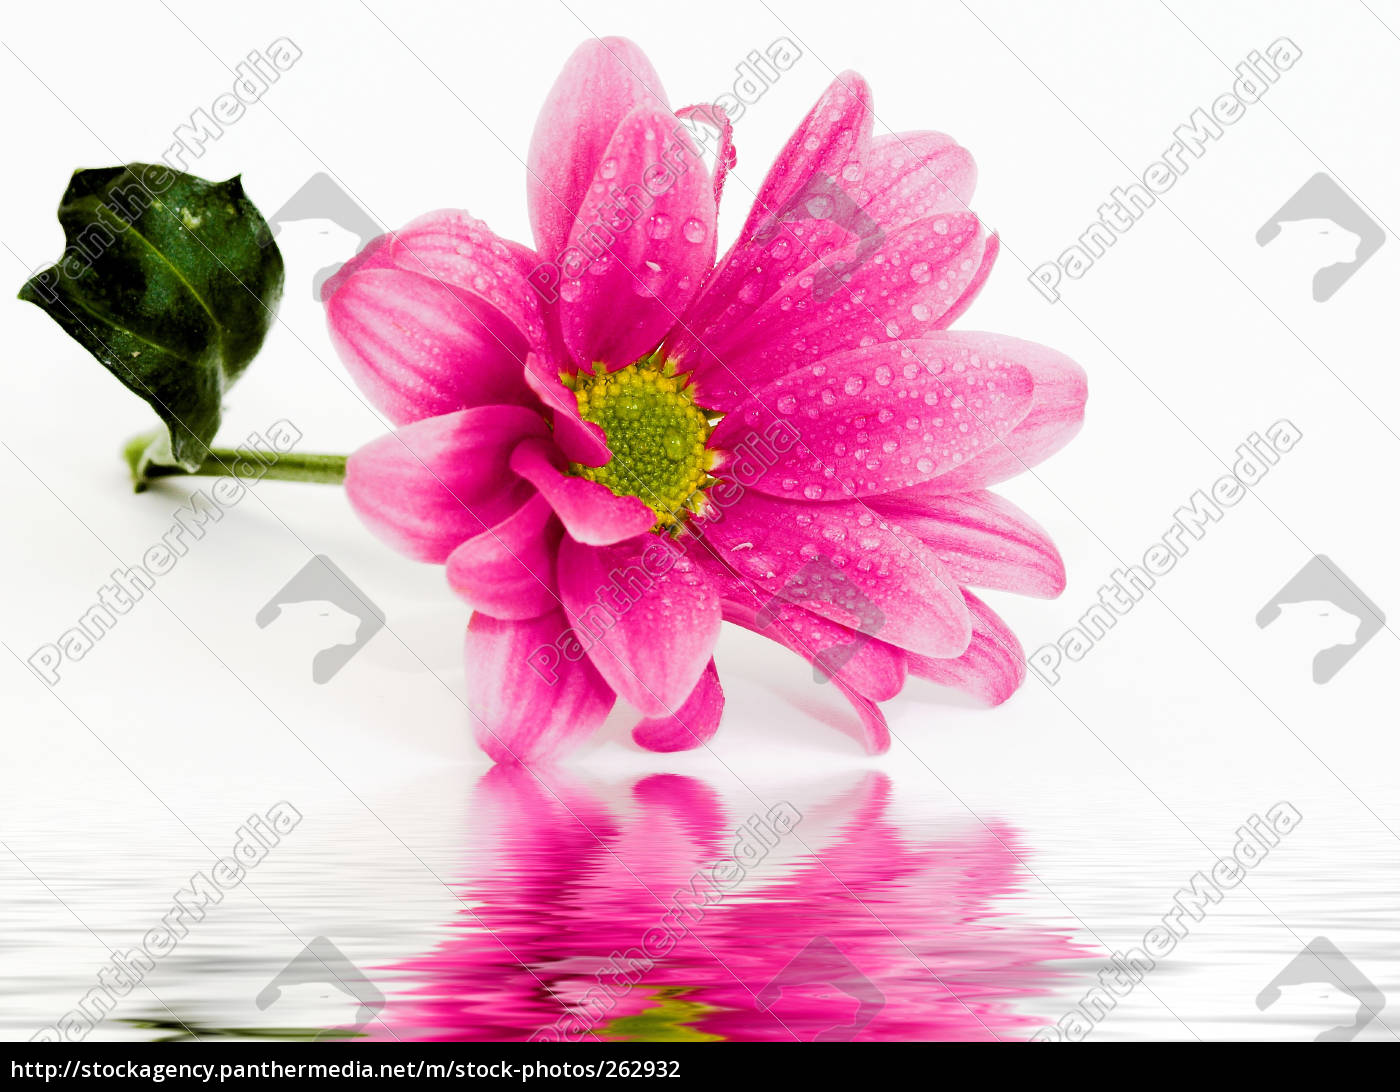 wet, chrysanthemums, i, part, iii - 262932